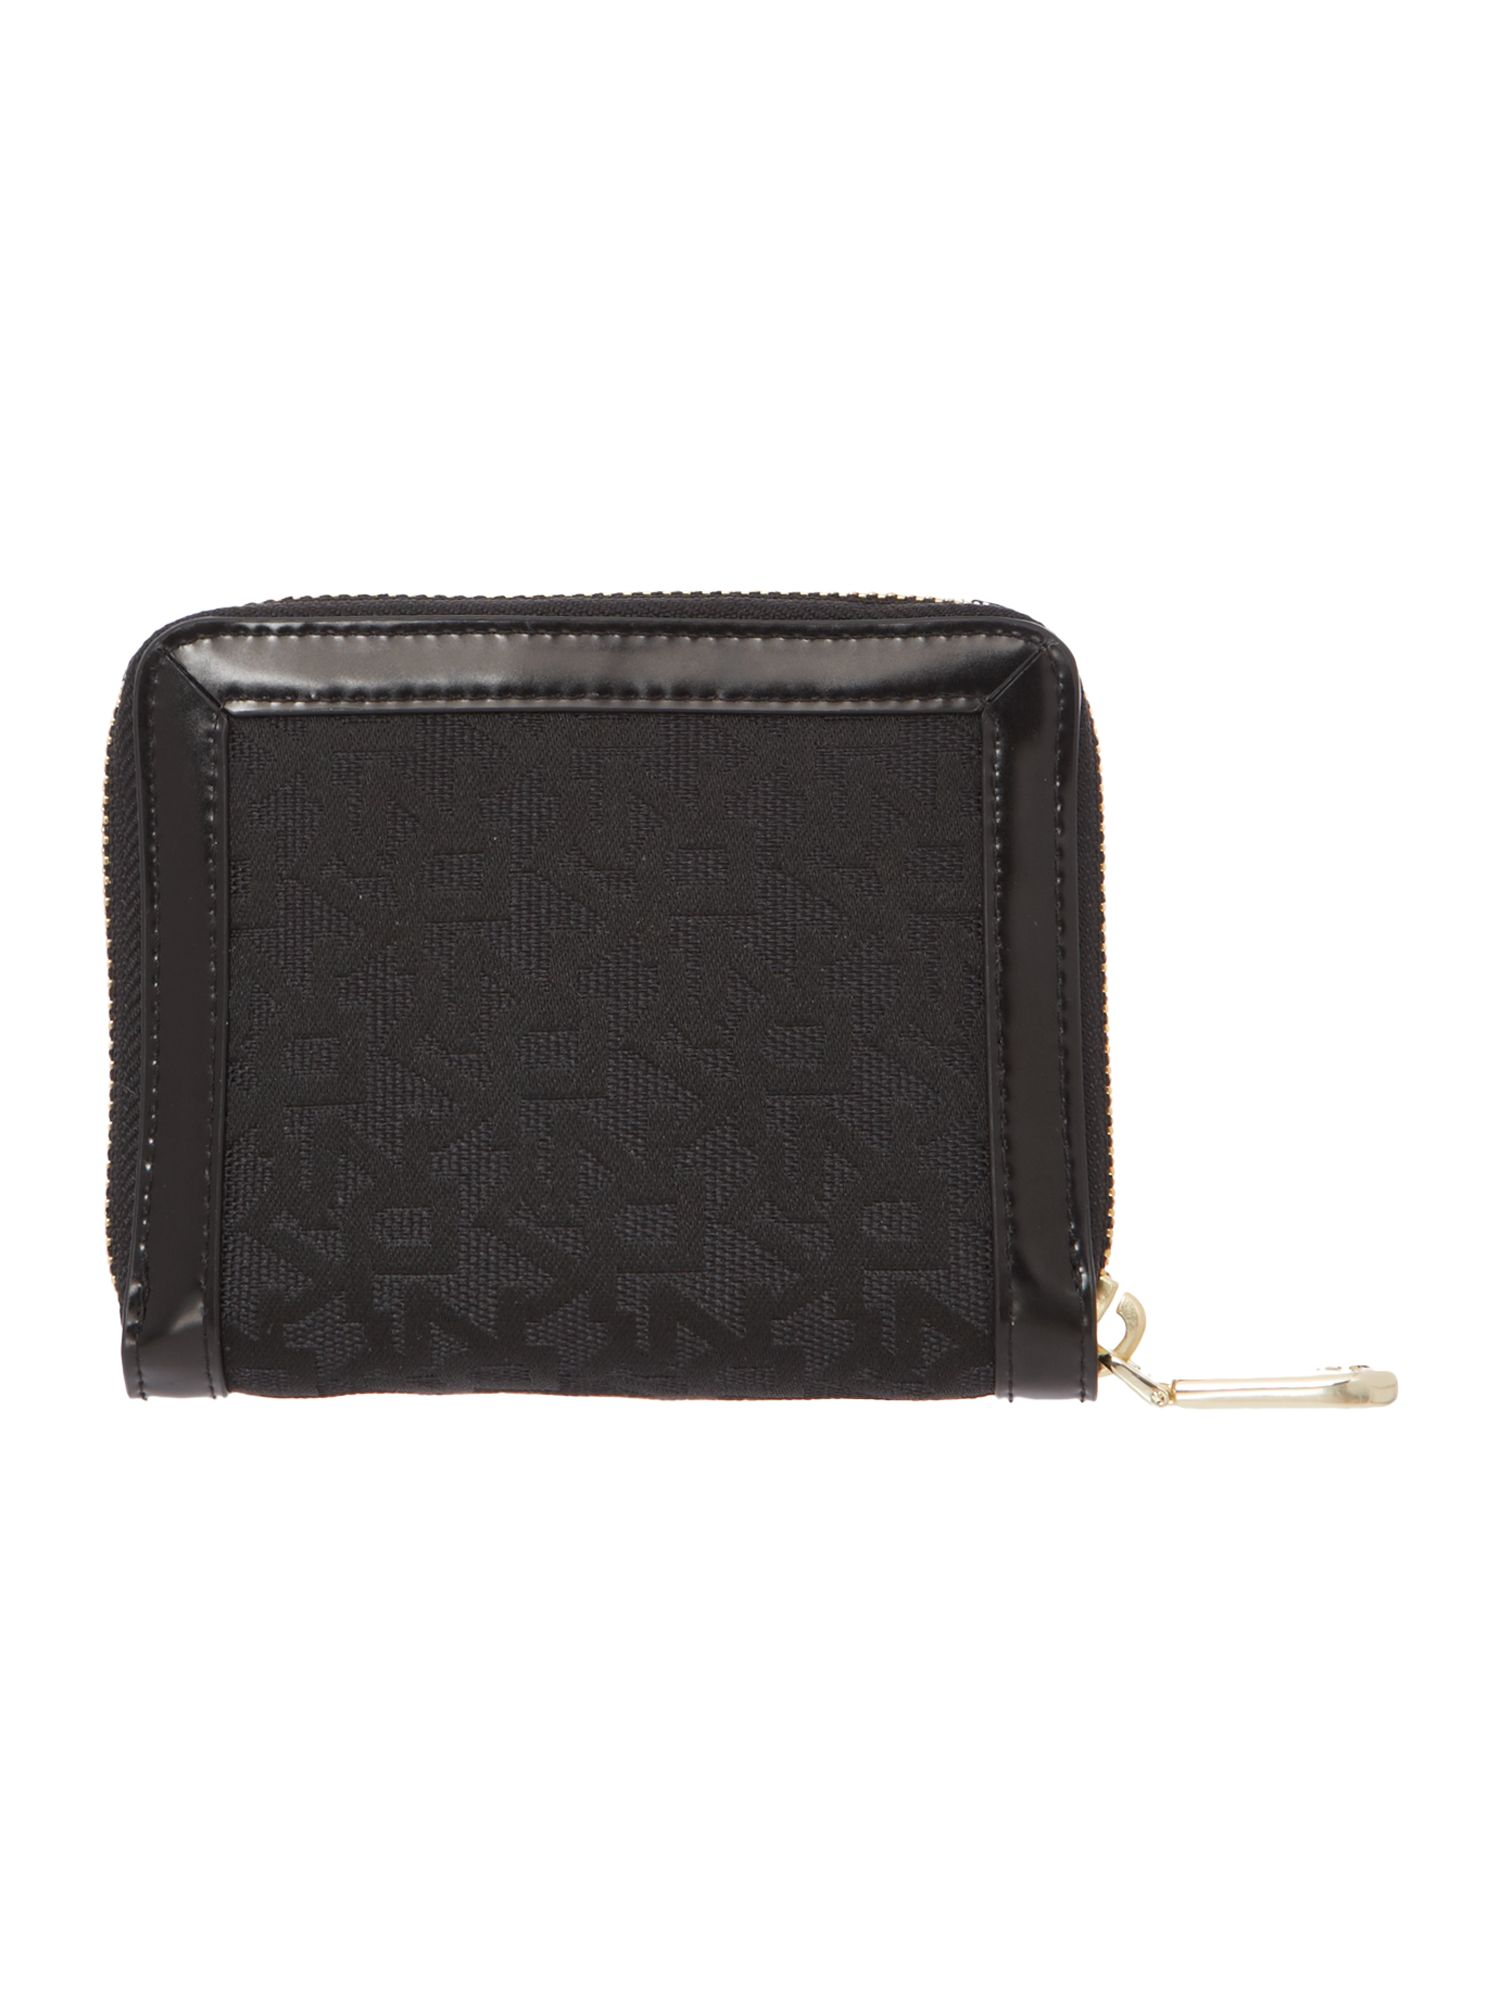 Heritage black small zip around purse